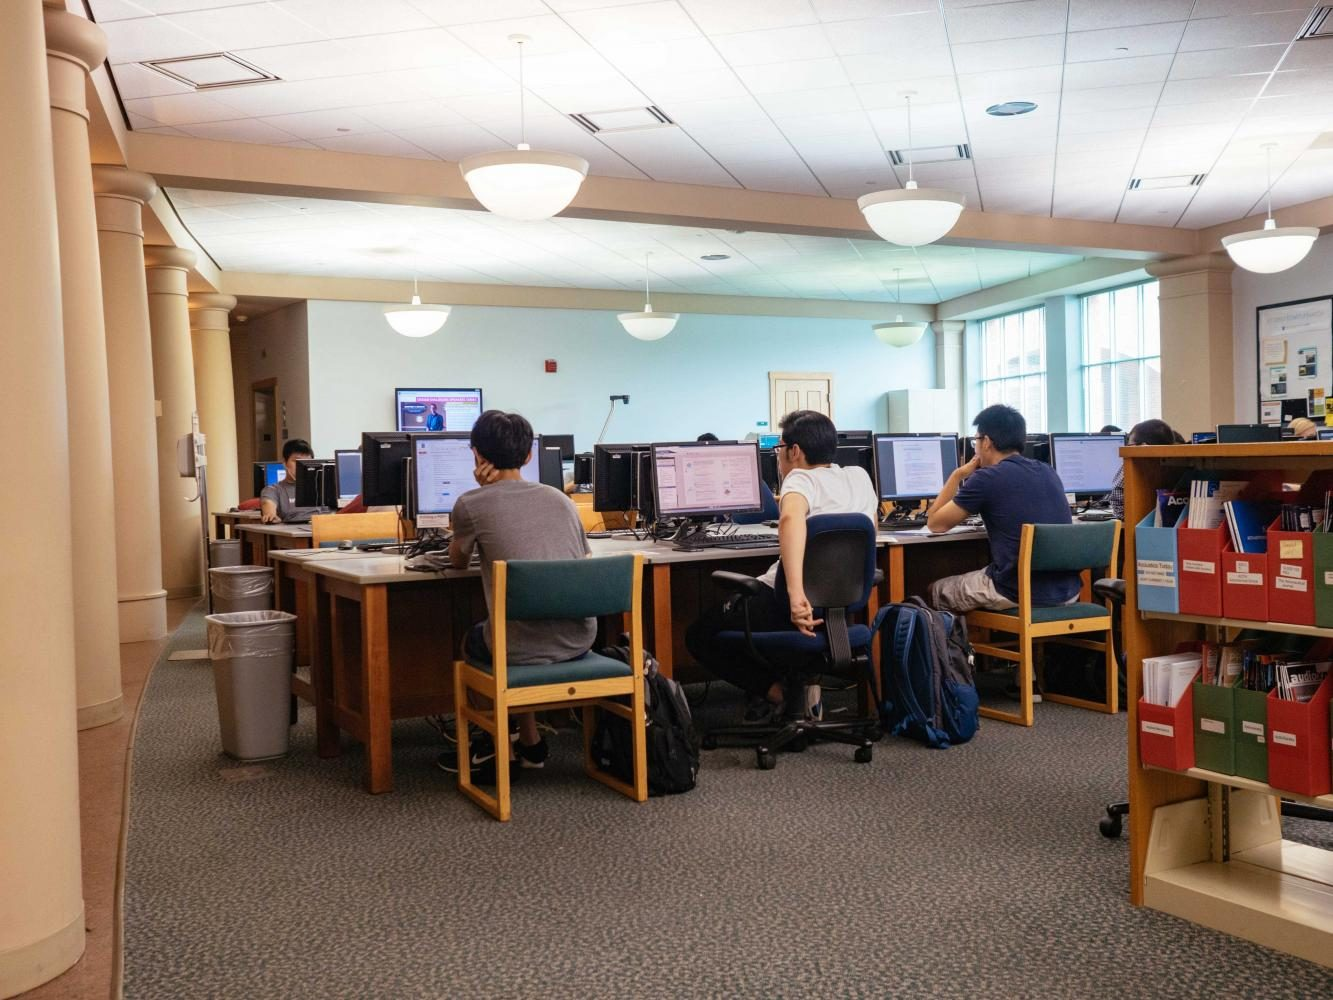 Students+study+in+anticipation+for+their+final+exams+at+Grainger+library.+Several+libraries+and+other+campus+locations+have+expanded+their+hours+and+added+services%2C+such+as+therapy+dogs%2C+to+assist+students.